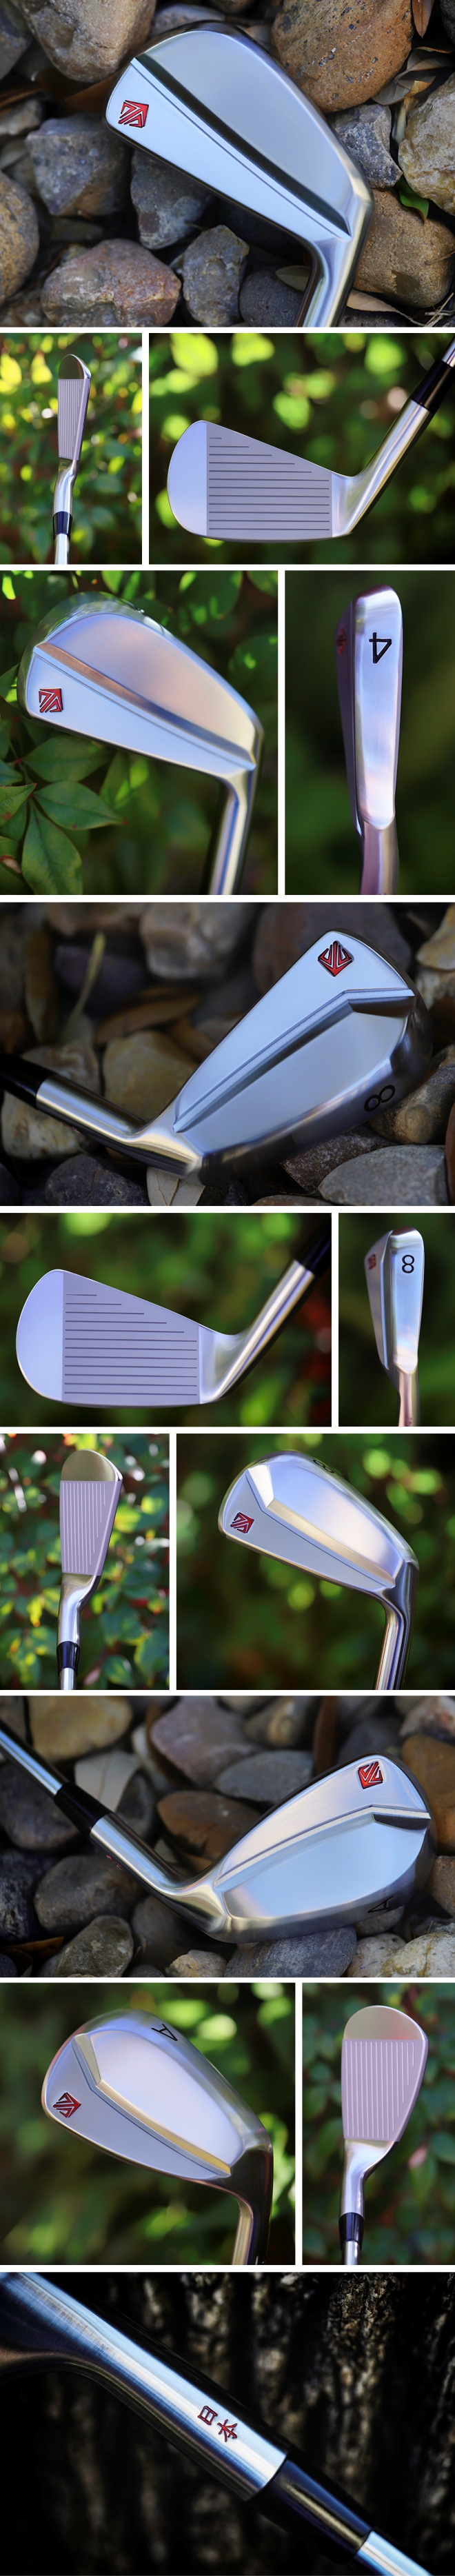 SEVEN Real Prototype MB aka RED 2 Iron